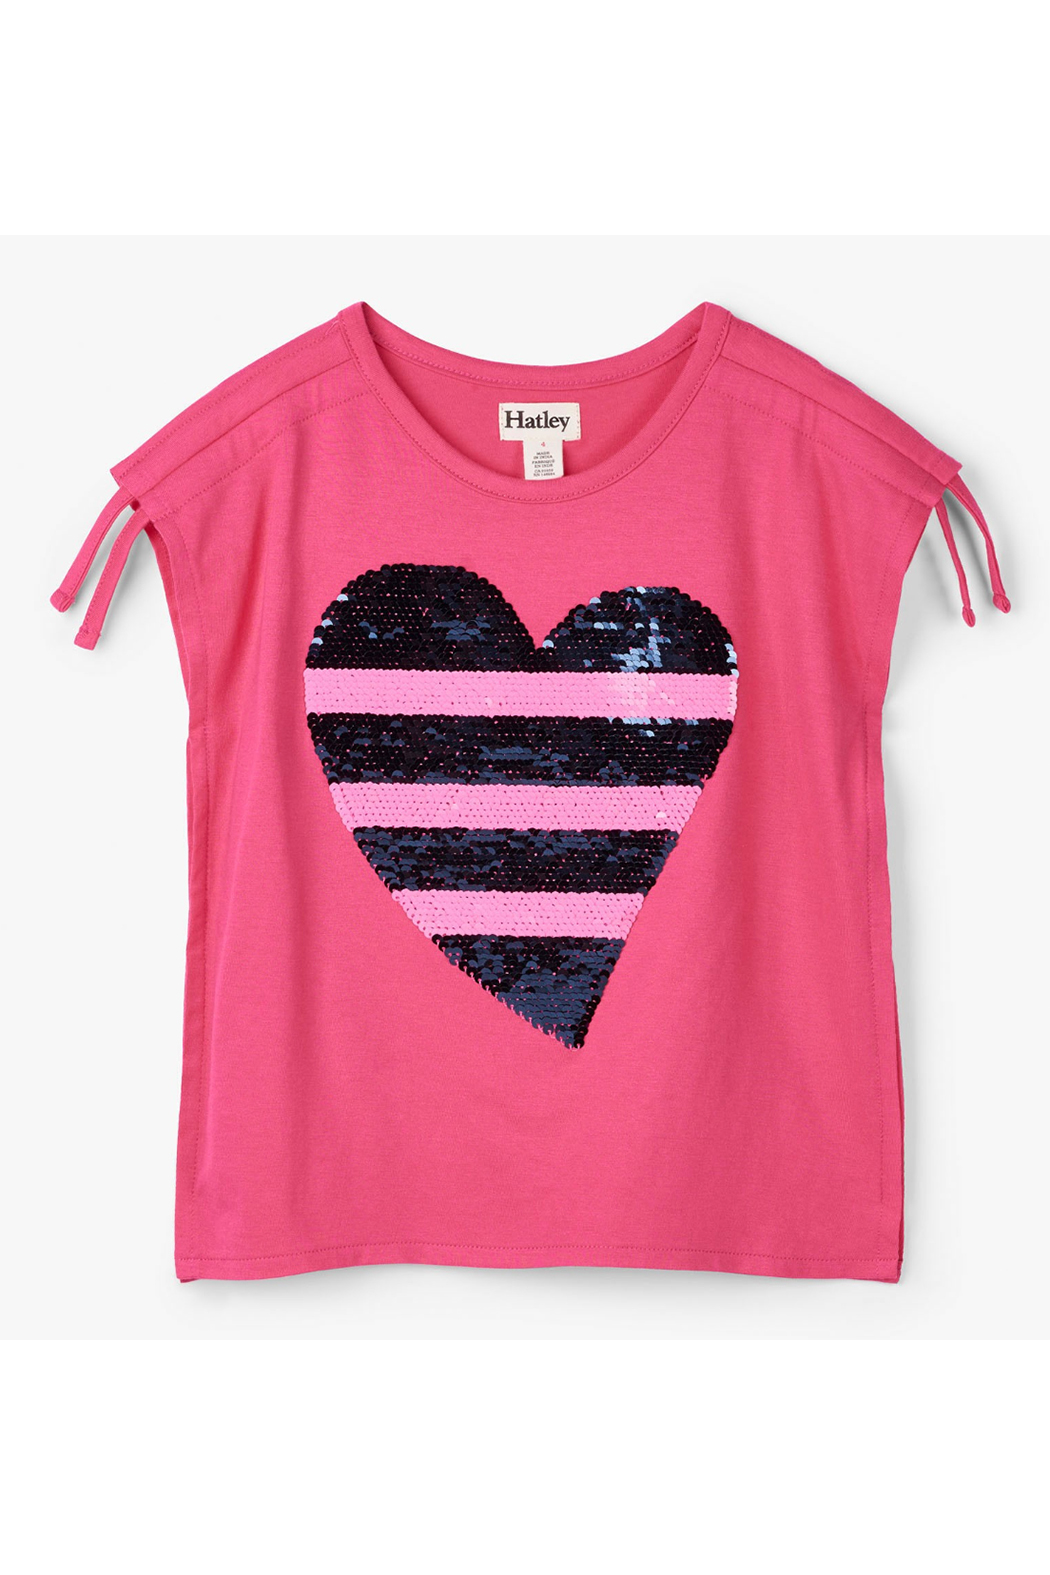 Hatley Flip Sequin Heart Cinched Shoulder Tee - Main Image